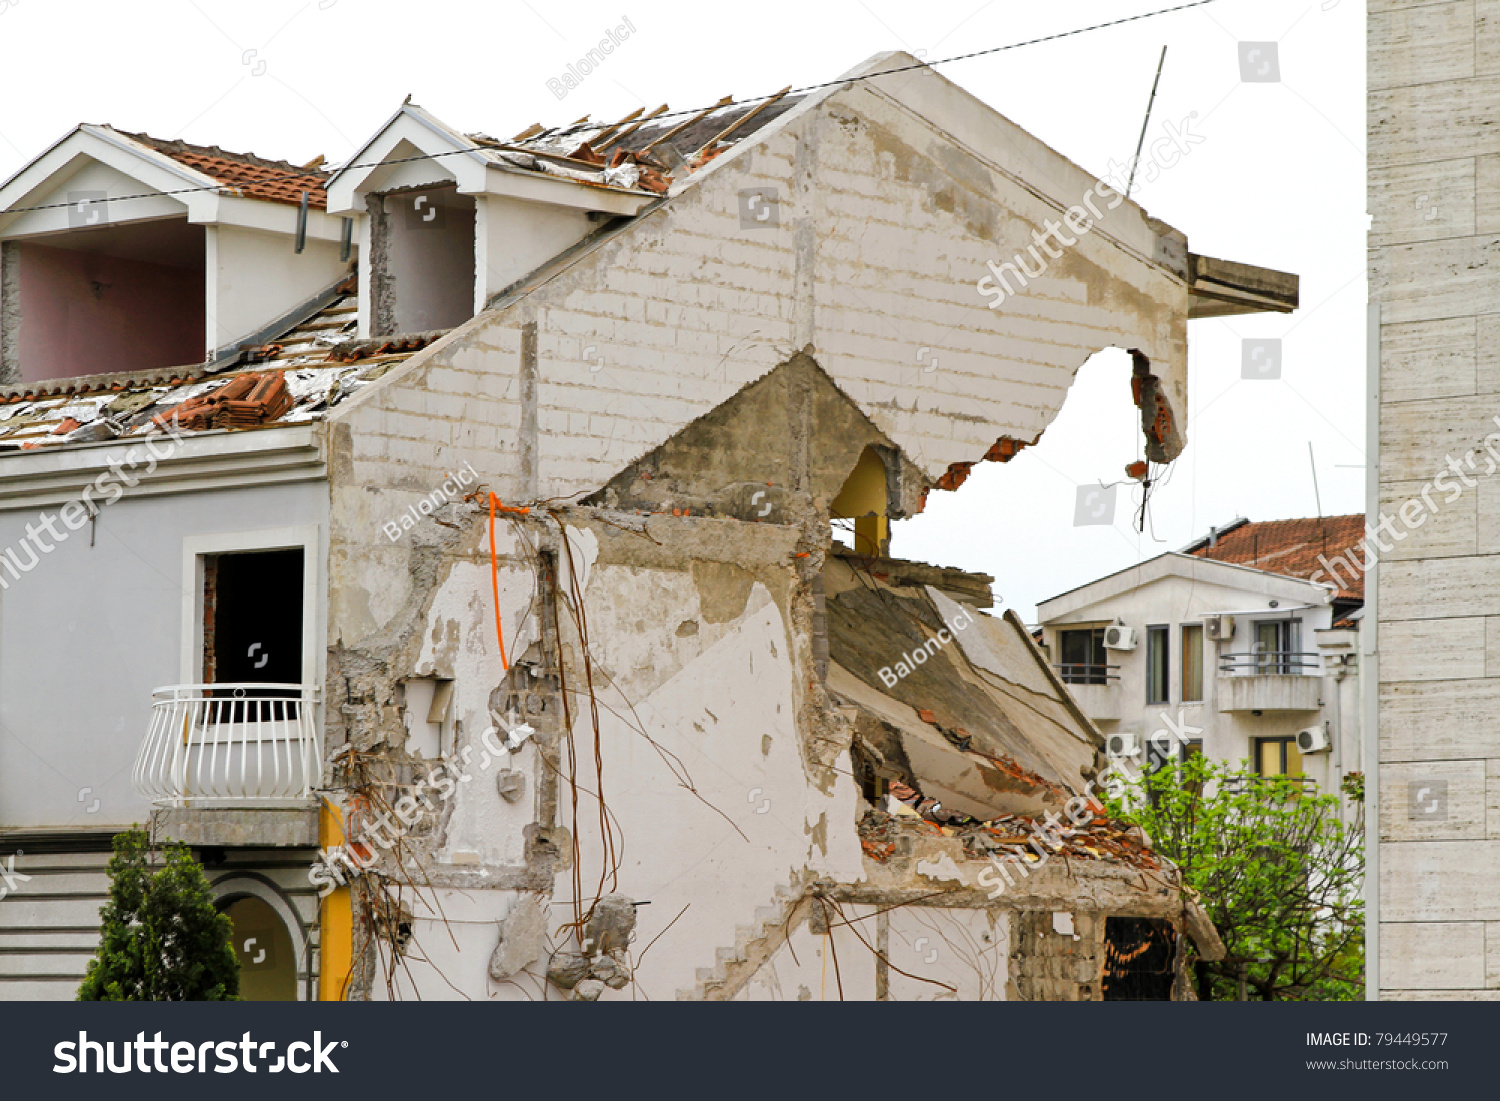 damaged house after strong earthquake natural stock photo 79449577 shutterstock. Black Bedroom Furniture Sets. Home Design Ideas